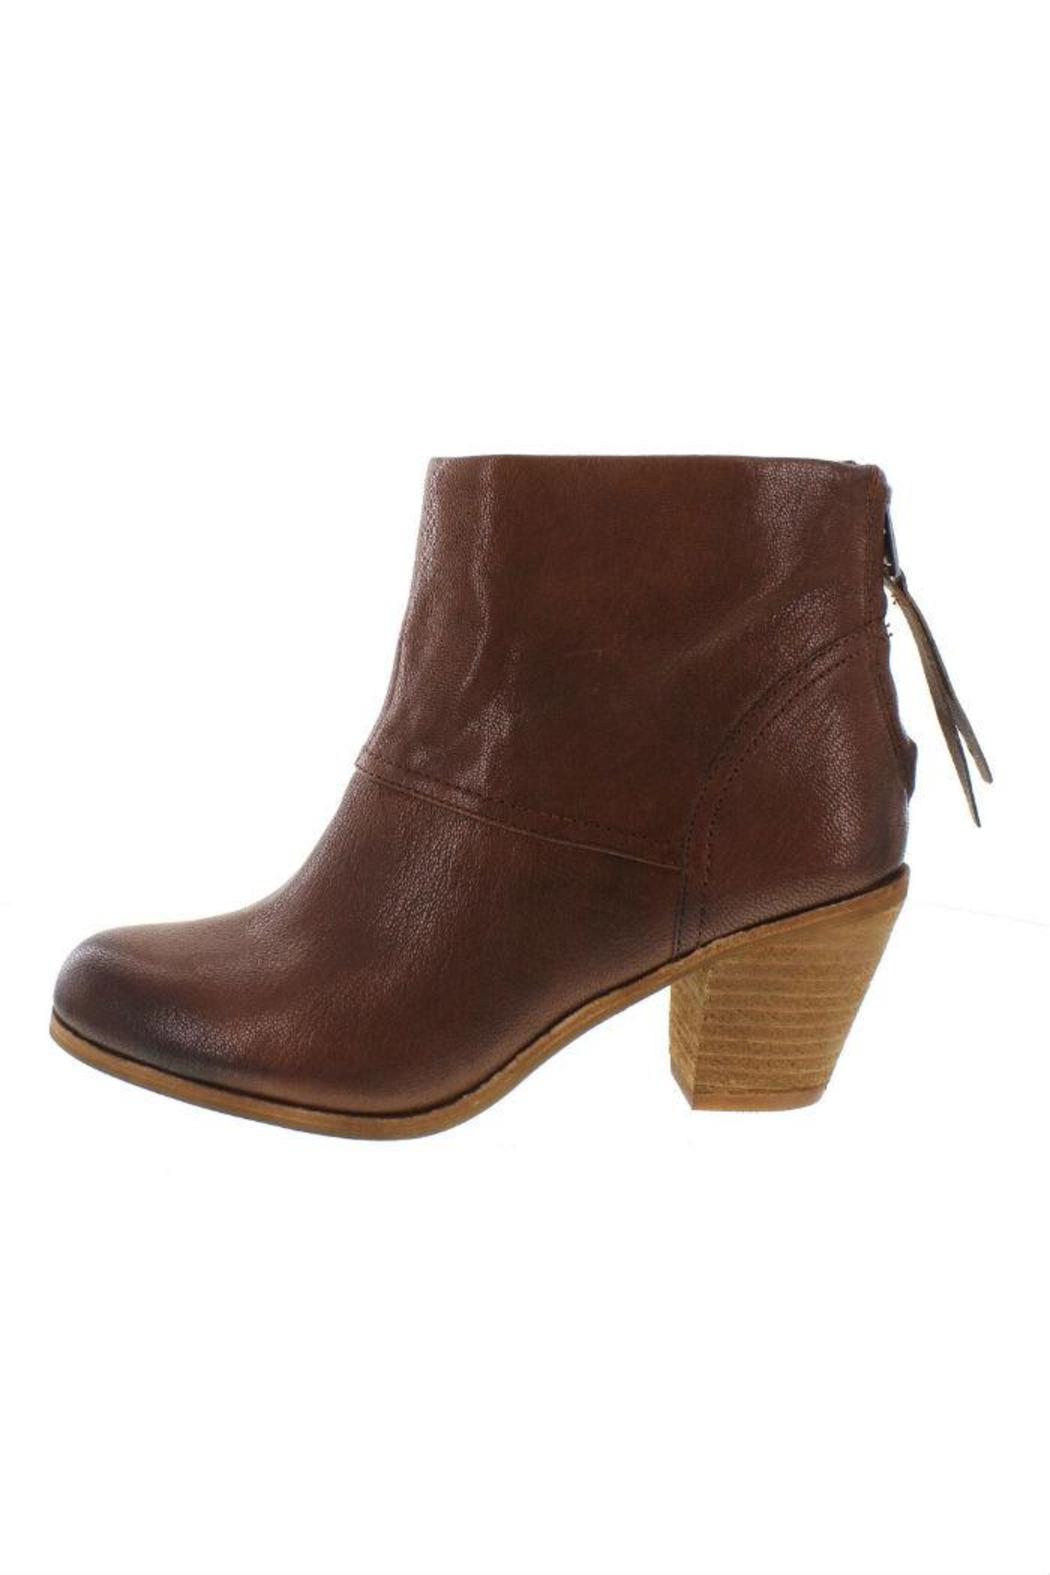 9b4e45942b9d Sam Edelman Leather Heeled Bootie from Canada by Modern Sole ...